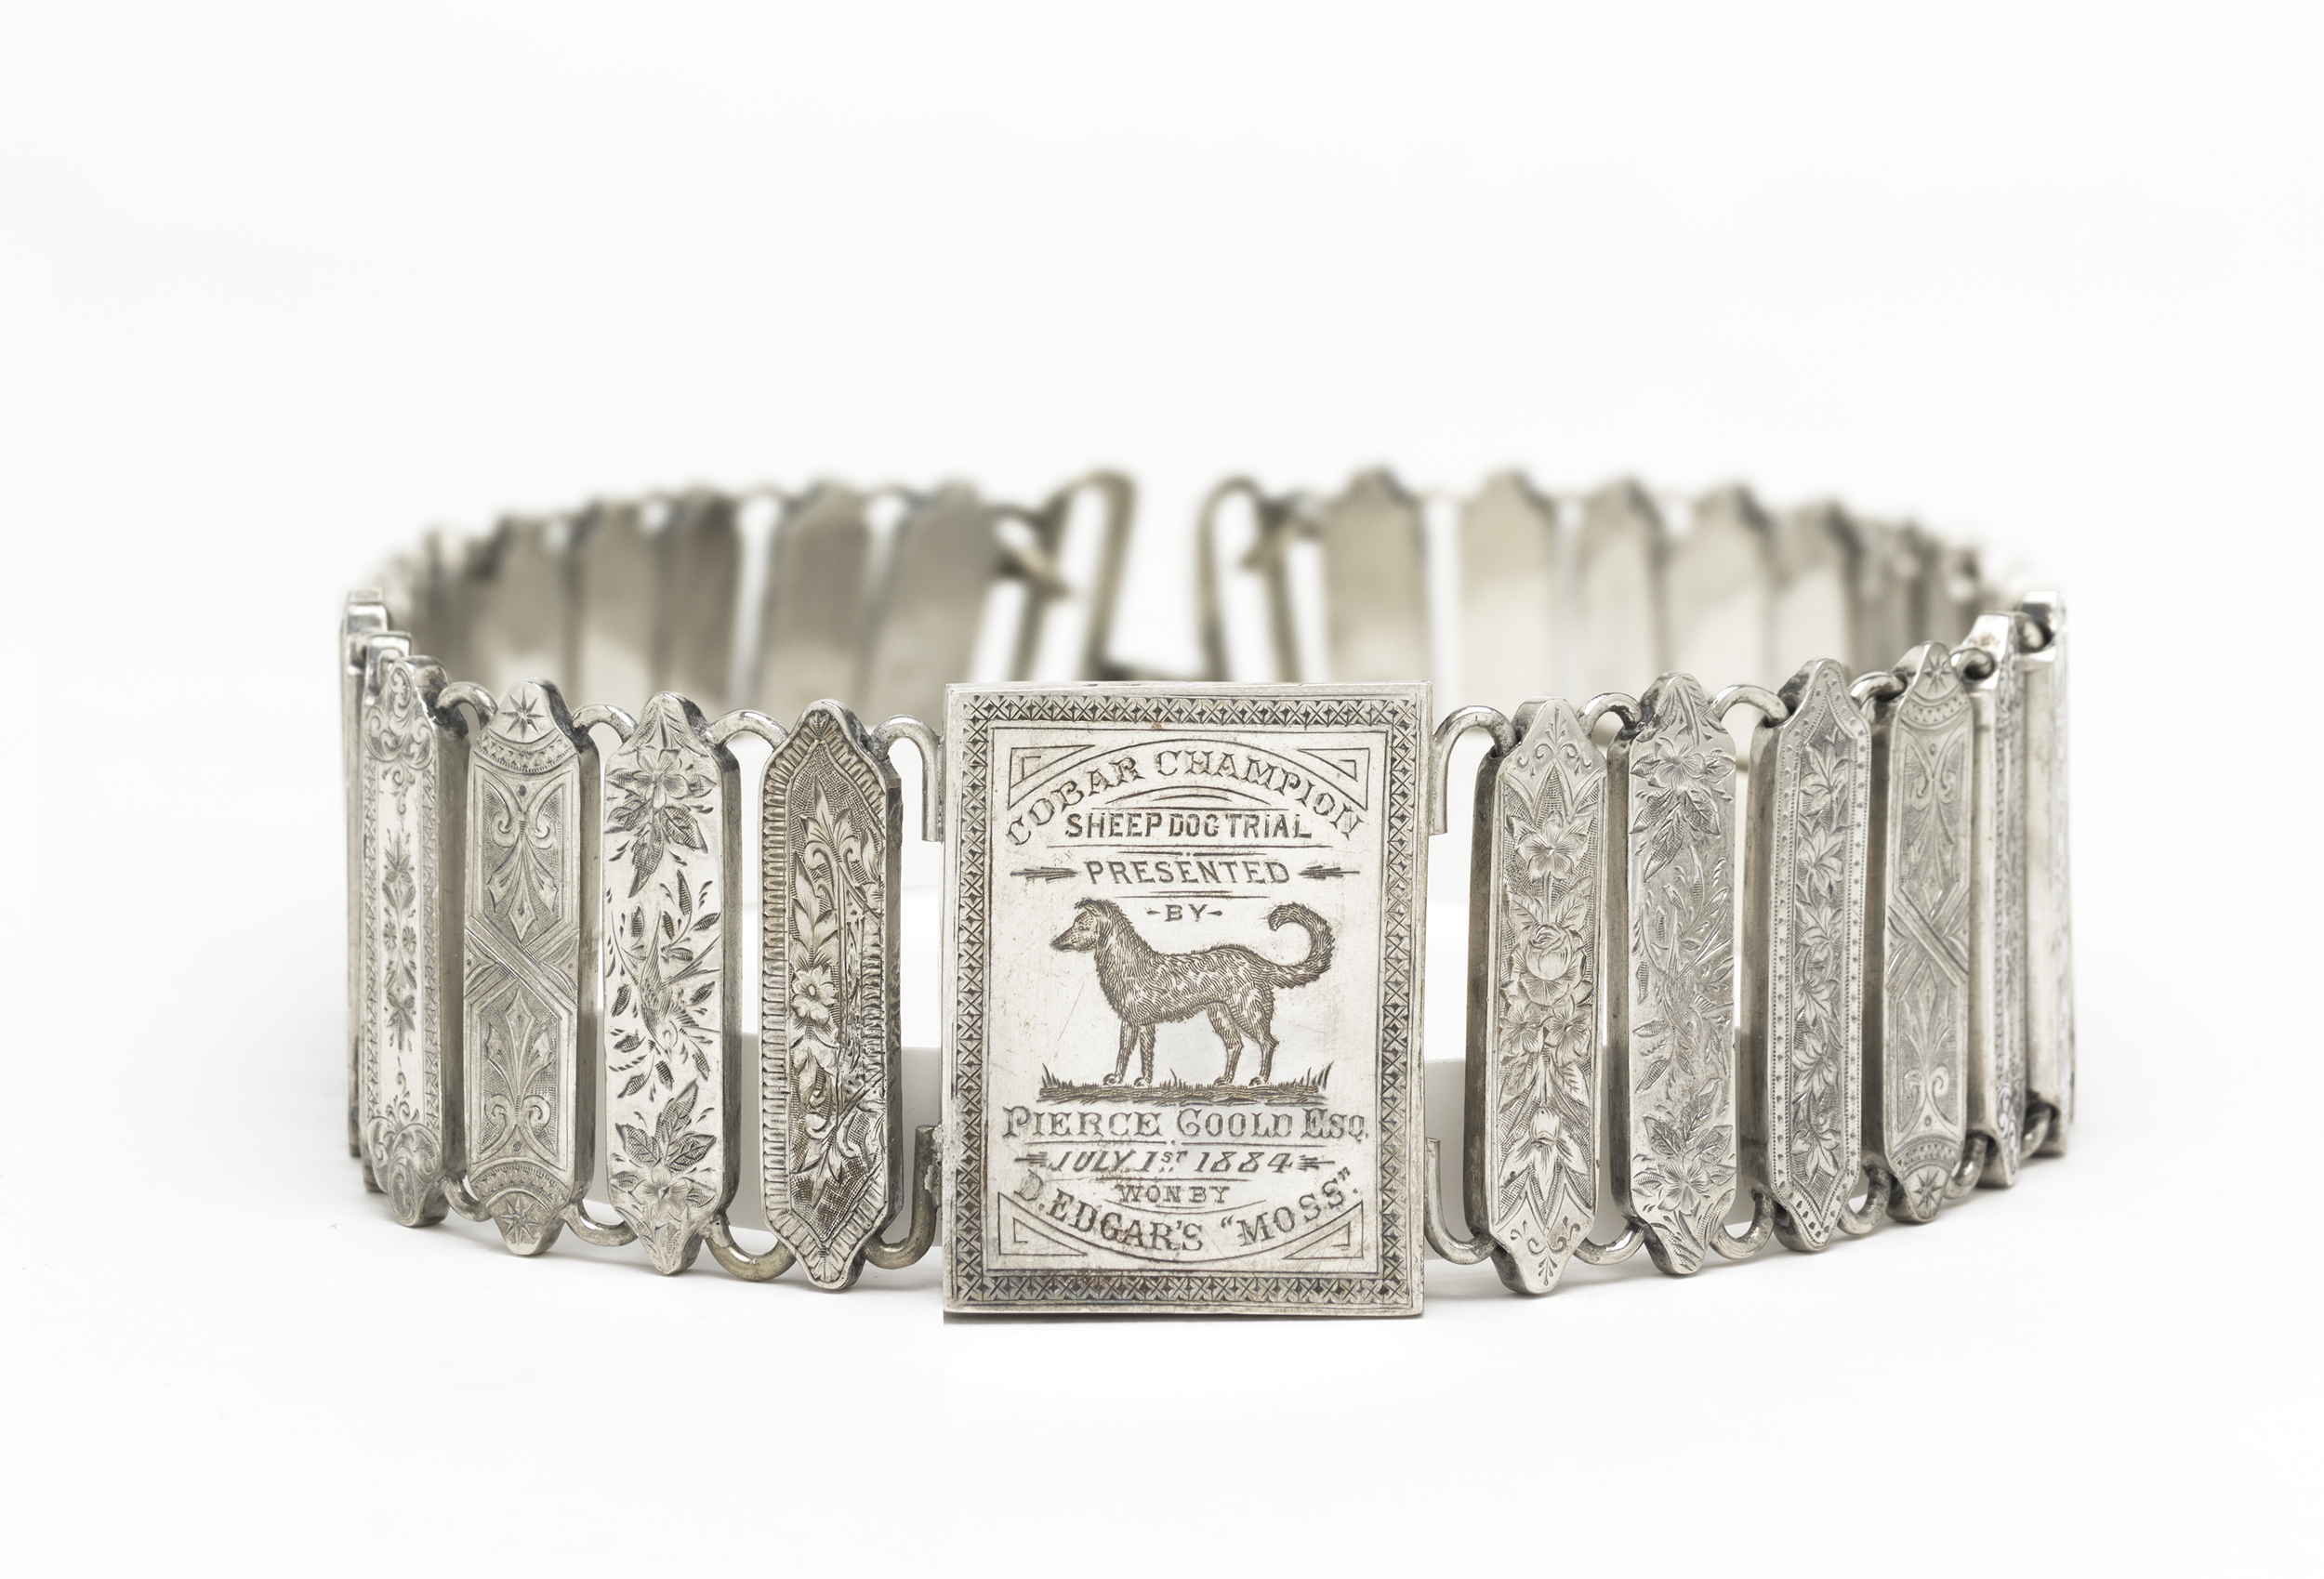 Unknown Australian silversmith,  Cobar Champion Sheep Dog Trial trophy collar c.1884,engraved silver.National Gallery of Australia, Canberra. Purchased 2008